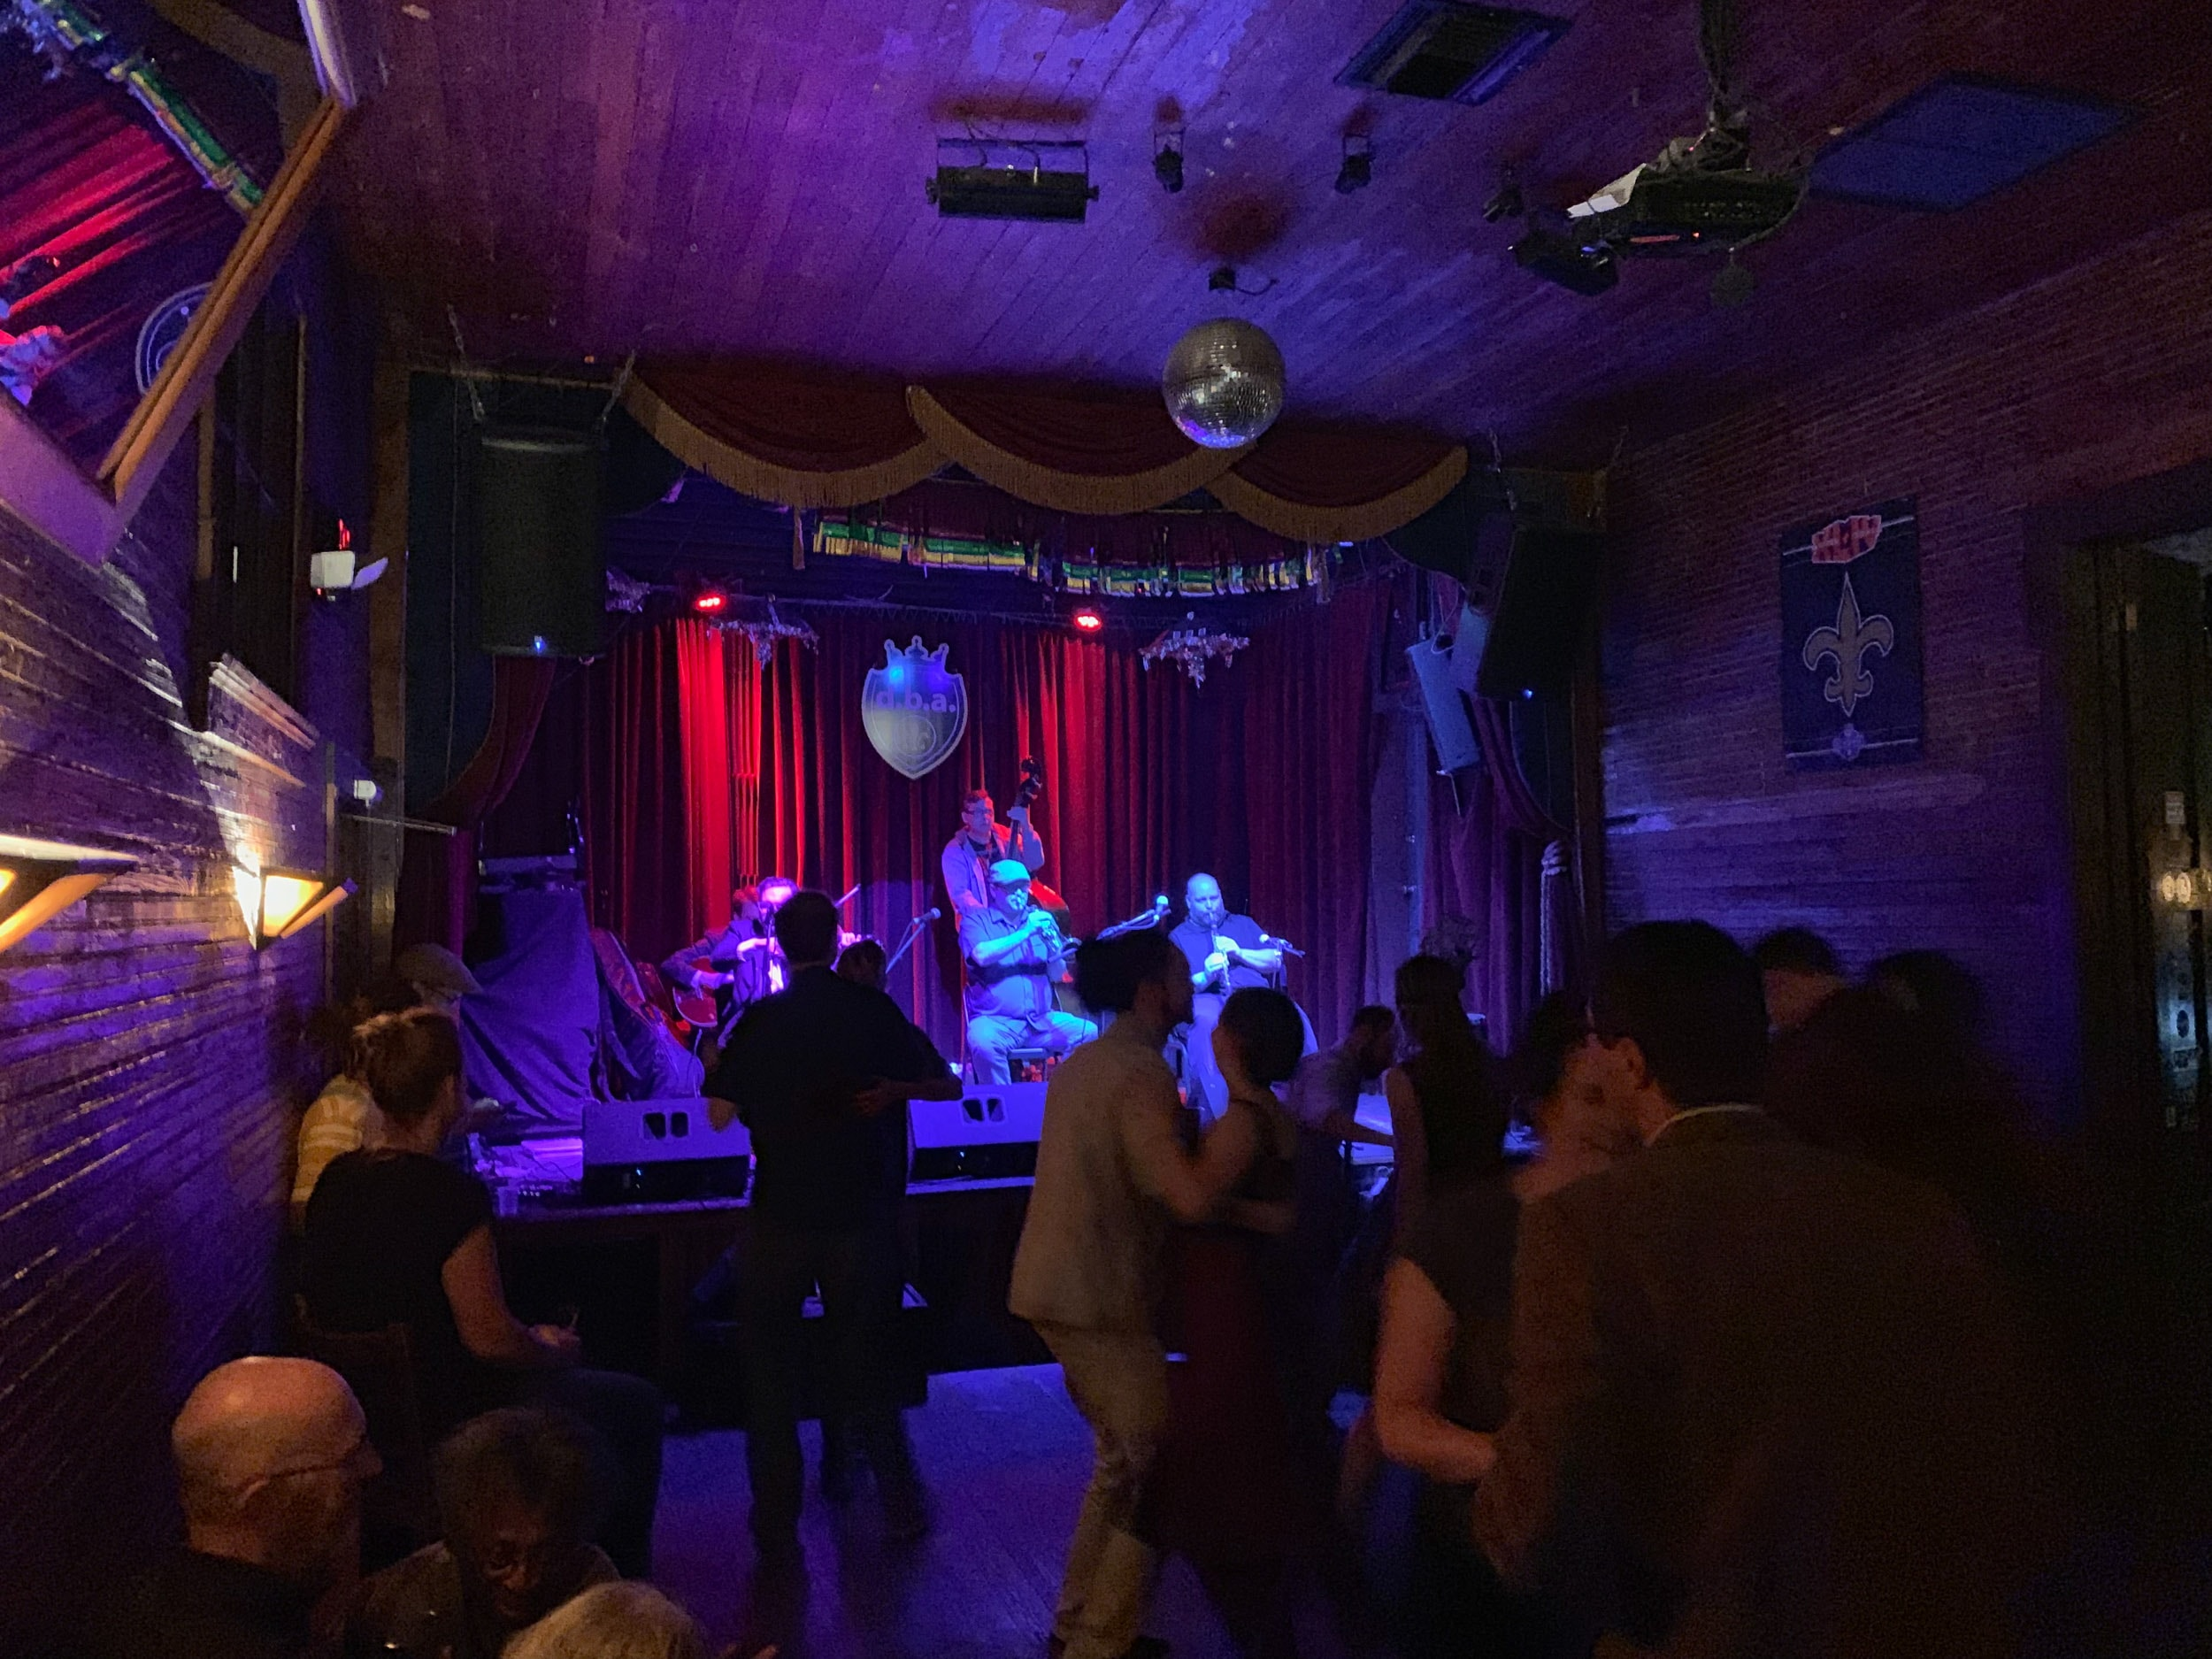 Swing dancing at d.b.a. on Frenchmen Street in New Orleans